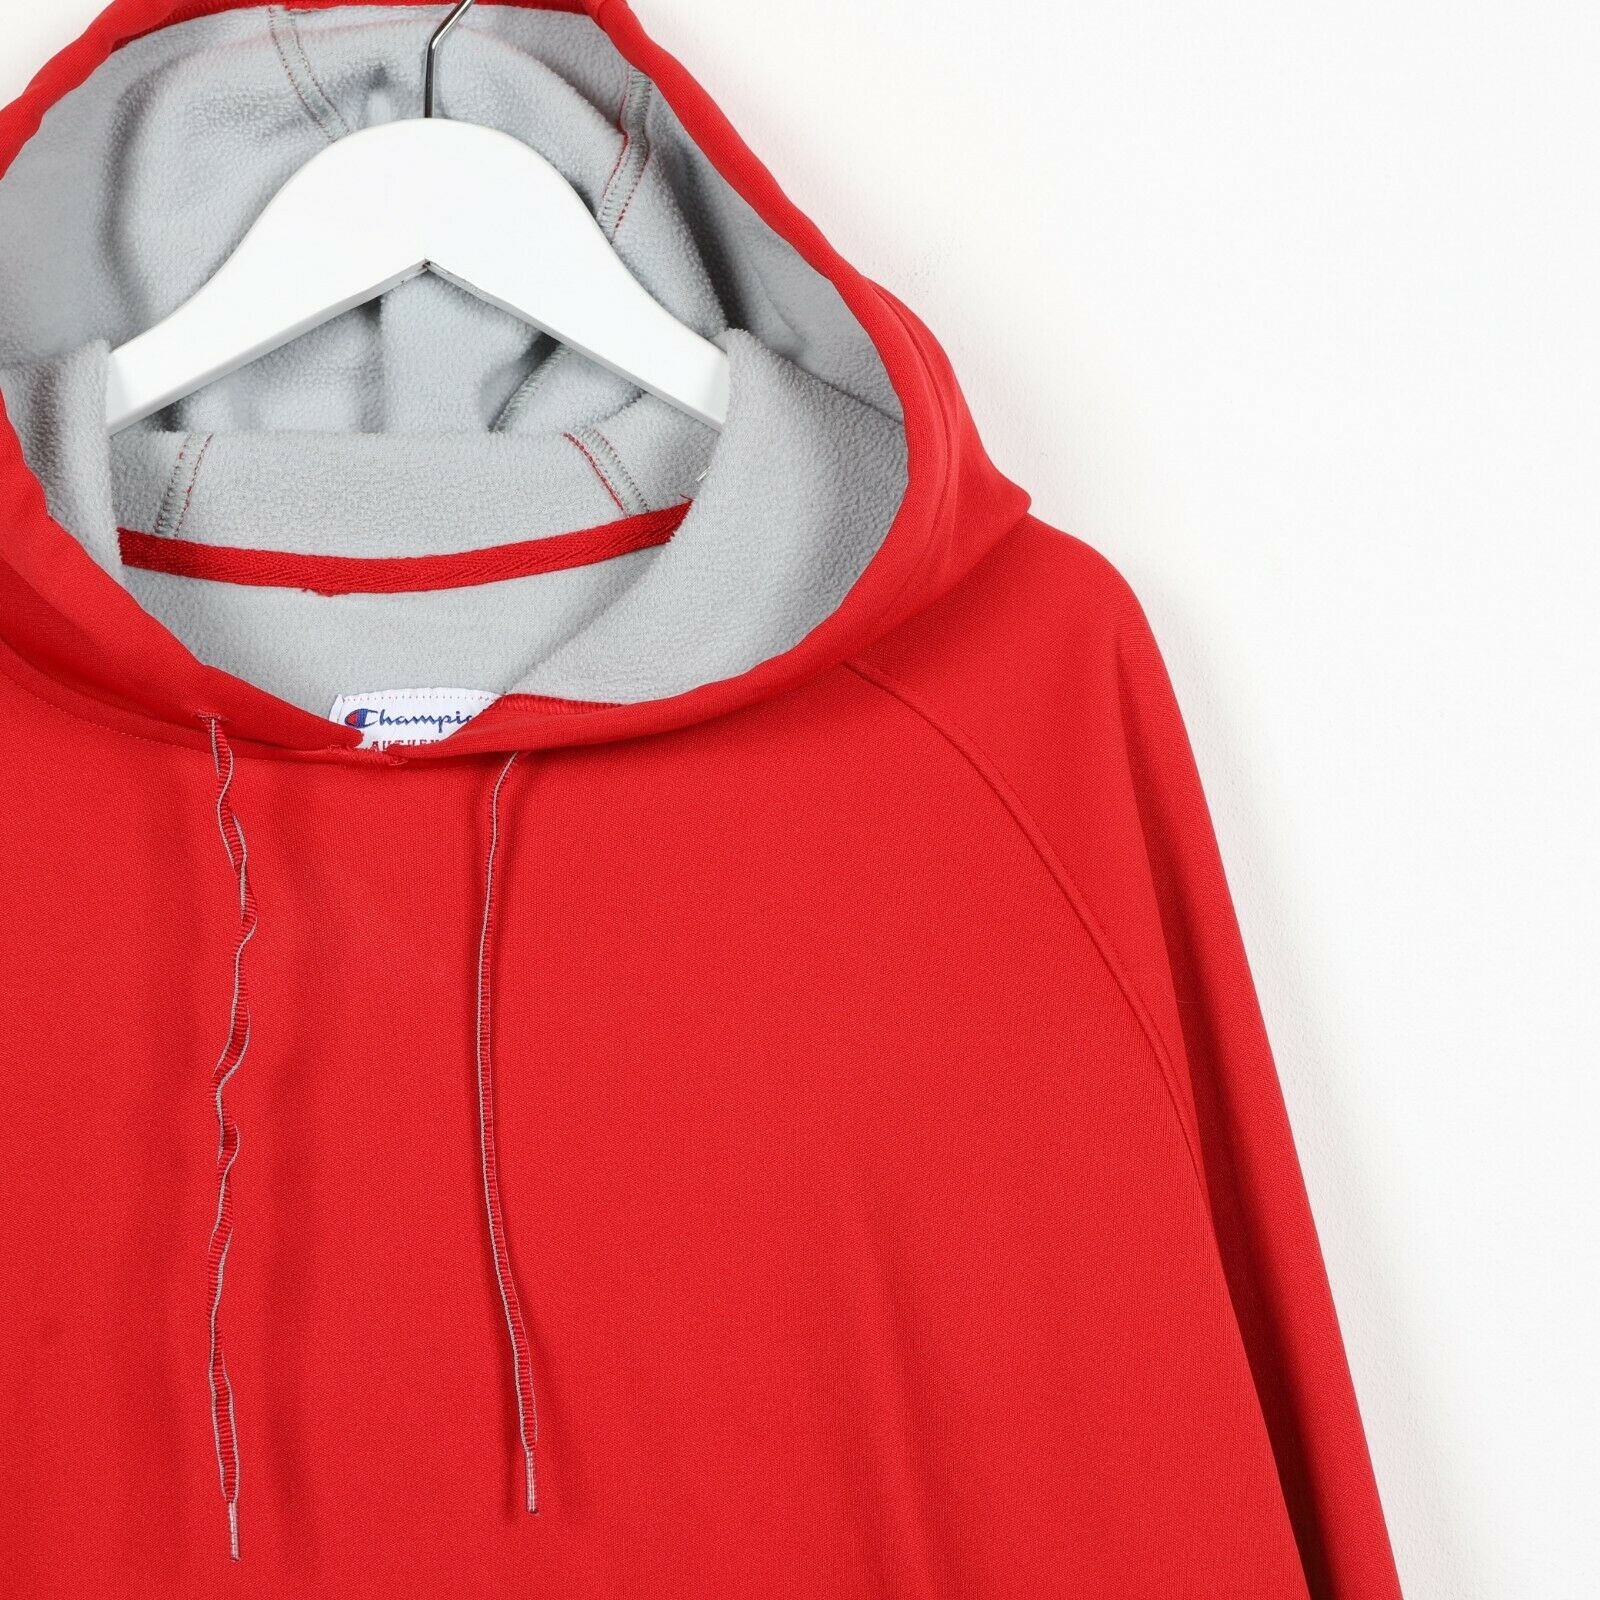 Vintage CHAMPION Sleeve Logo Polyester Hoodie Sweatshirt Red | XL